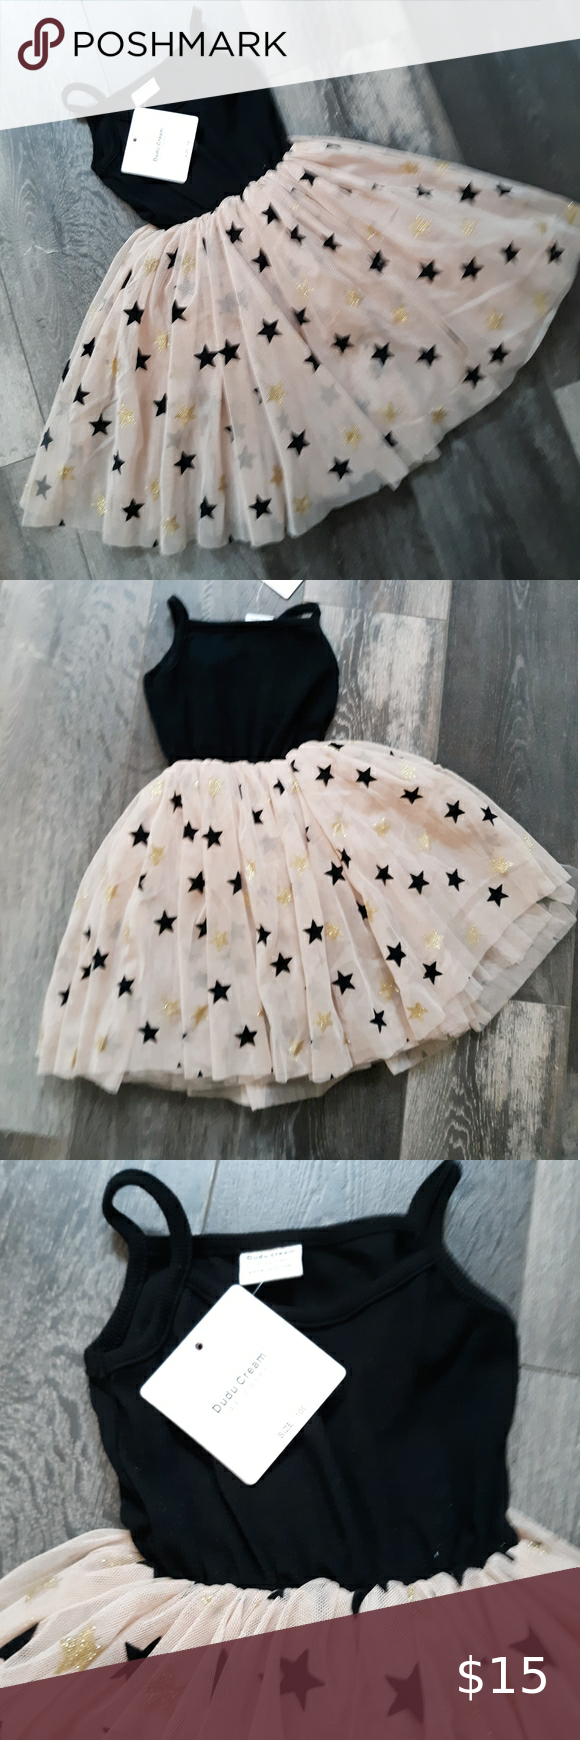 Girl S Dudu Cream Tulle Star Dress 3 4t Nwt A New With Tag Girls Fun Dress Dudu Cream Brand Black Tank With Attached Pin Star Dress Kids Dresses Cream Tulle [ 1740 x 580 Pixel ]